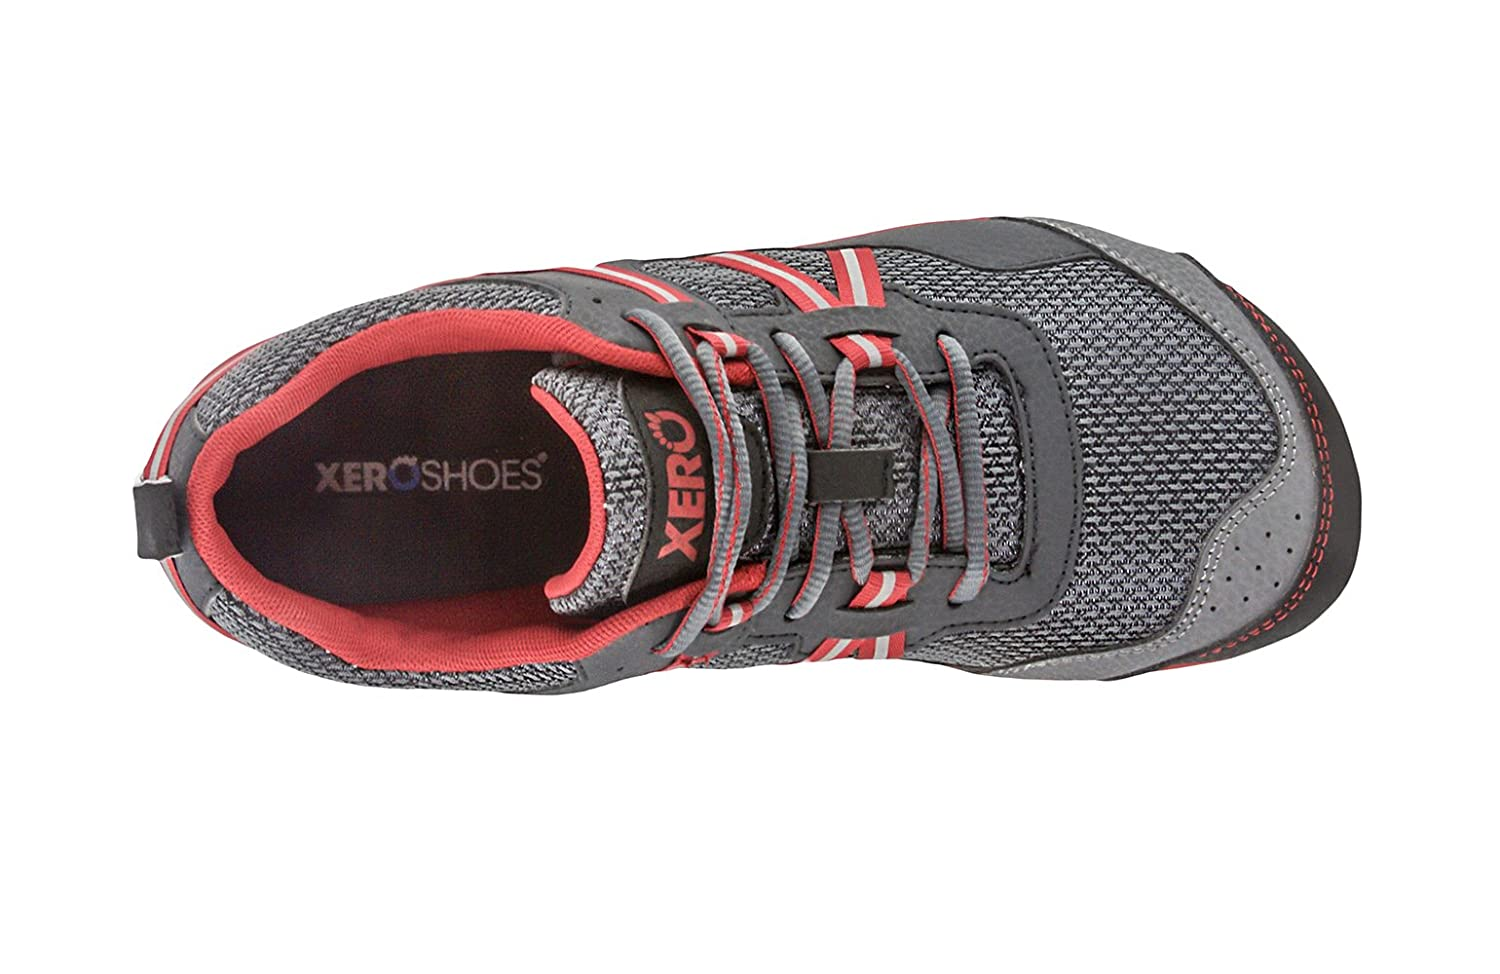 Mens Minimalist Barefoot Trail and Road Running Shoe Xero Shoes Prio Athletic Zero Drop Sneaker Fitness